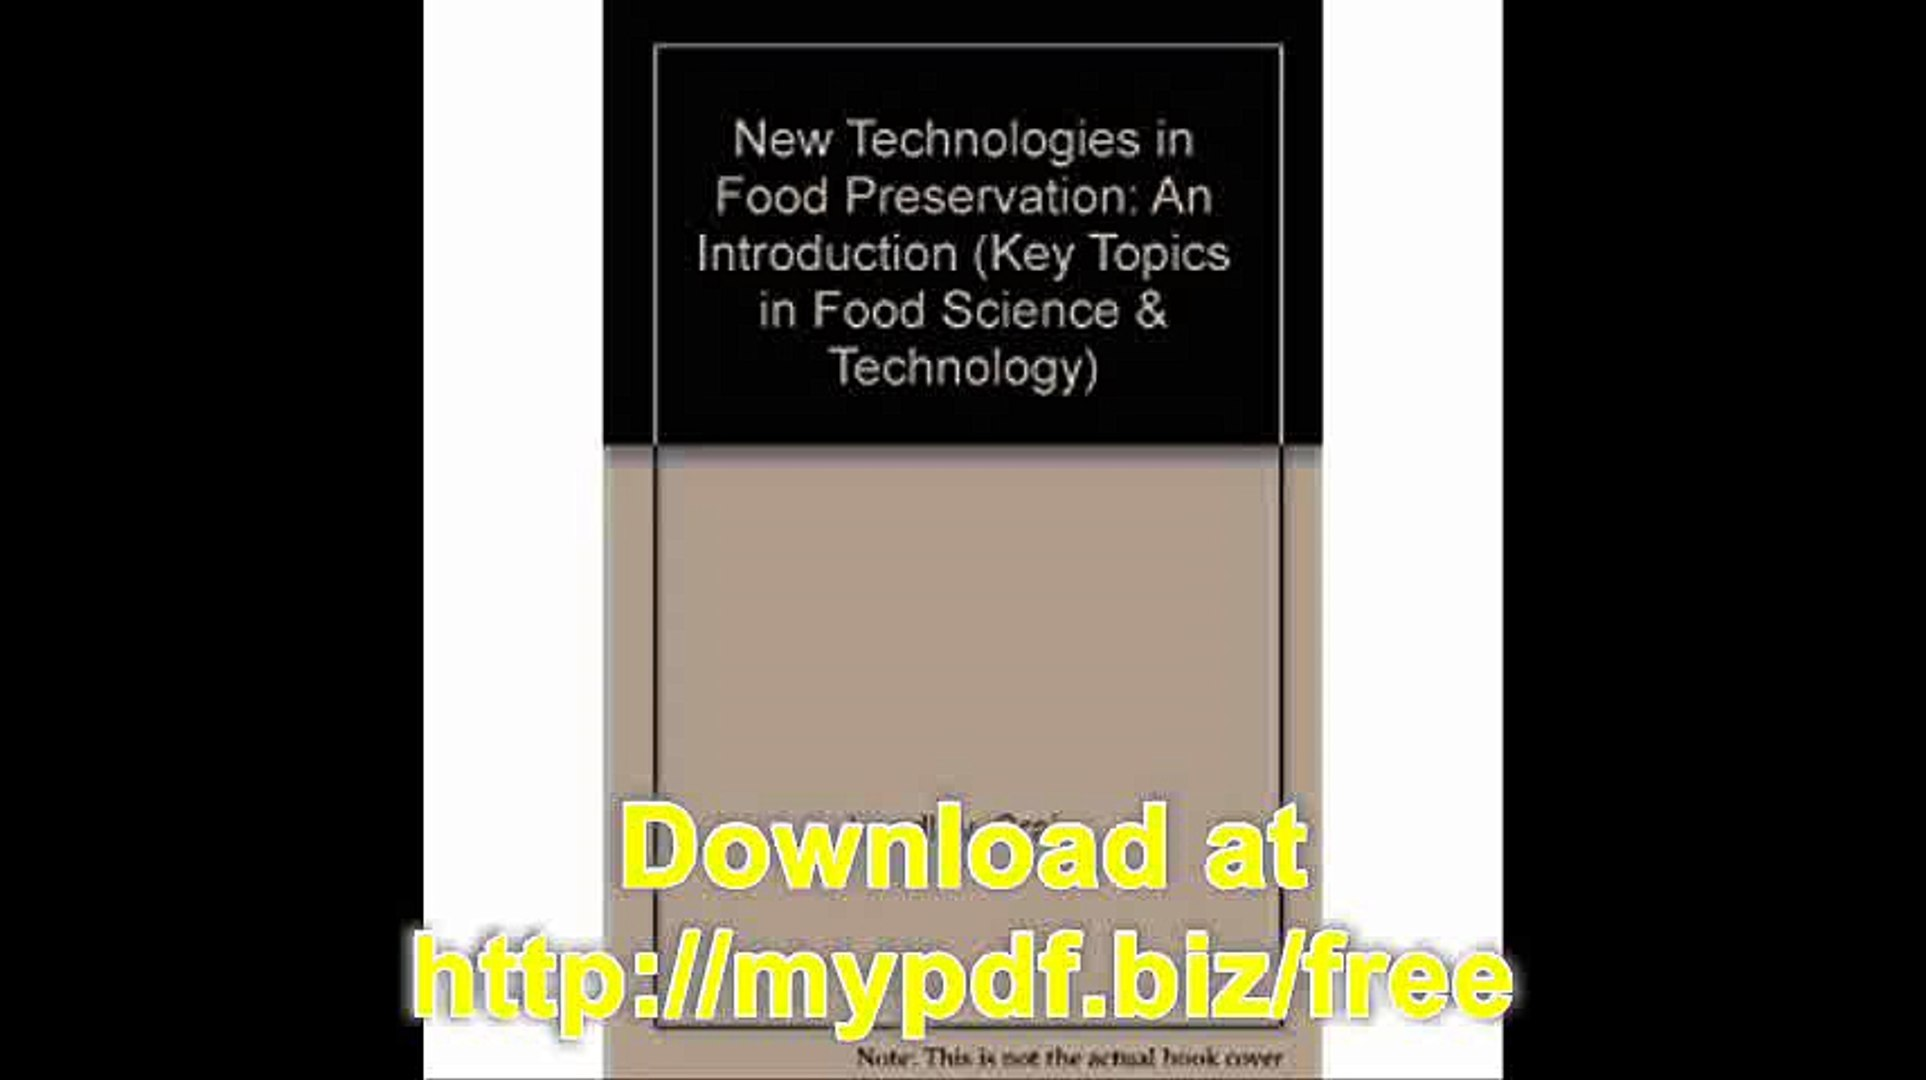 New Technologies in Food Preservation An Introduction (Key Topics in Food Science & Technology)